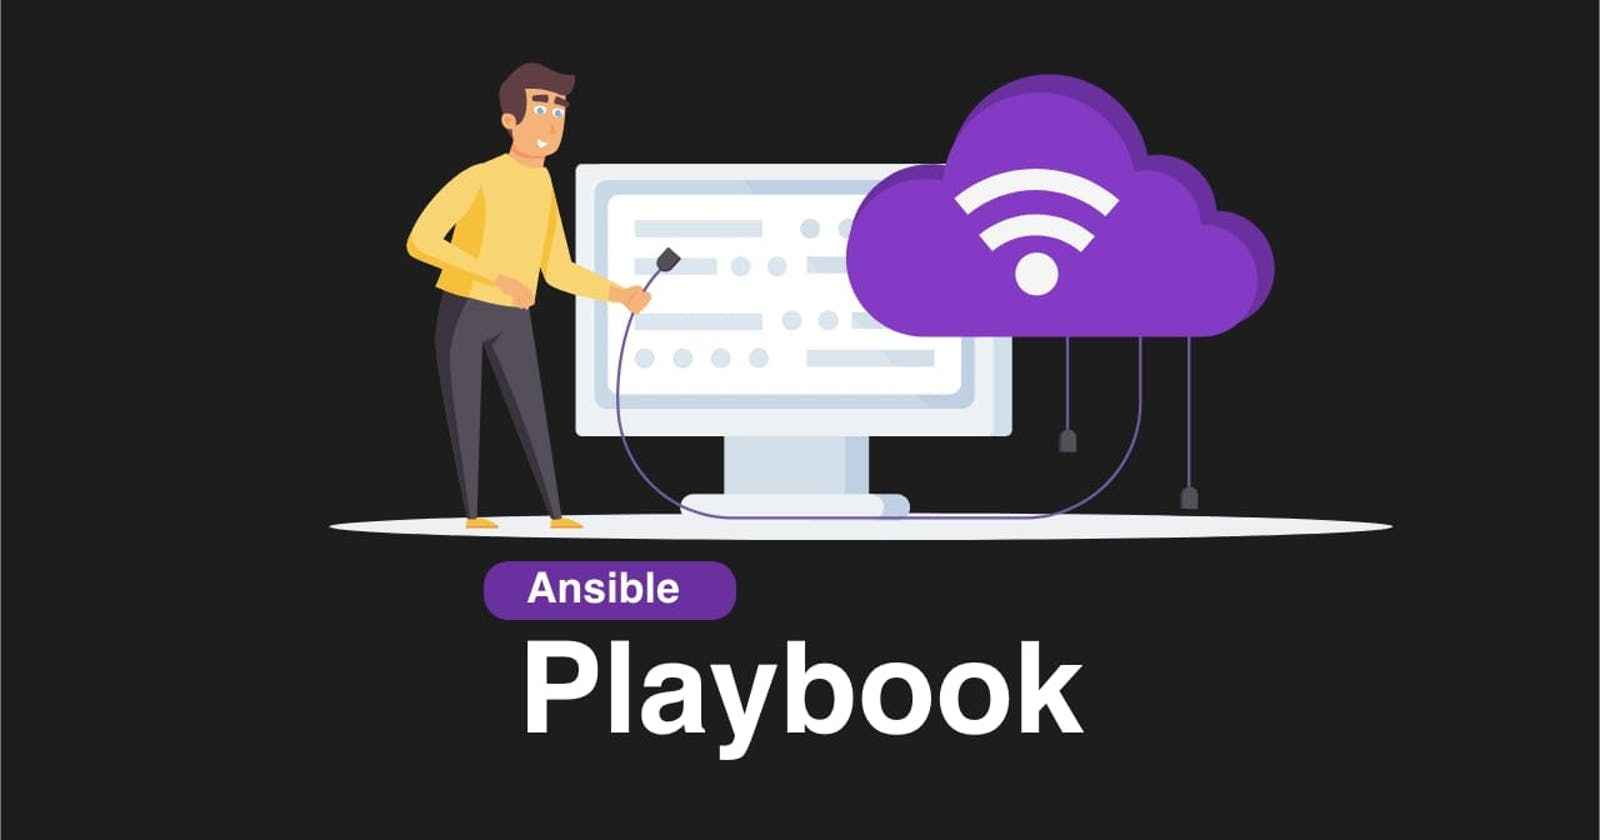 Ansible Playbook Implementation